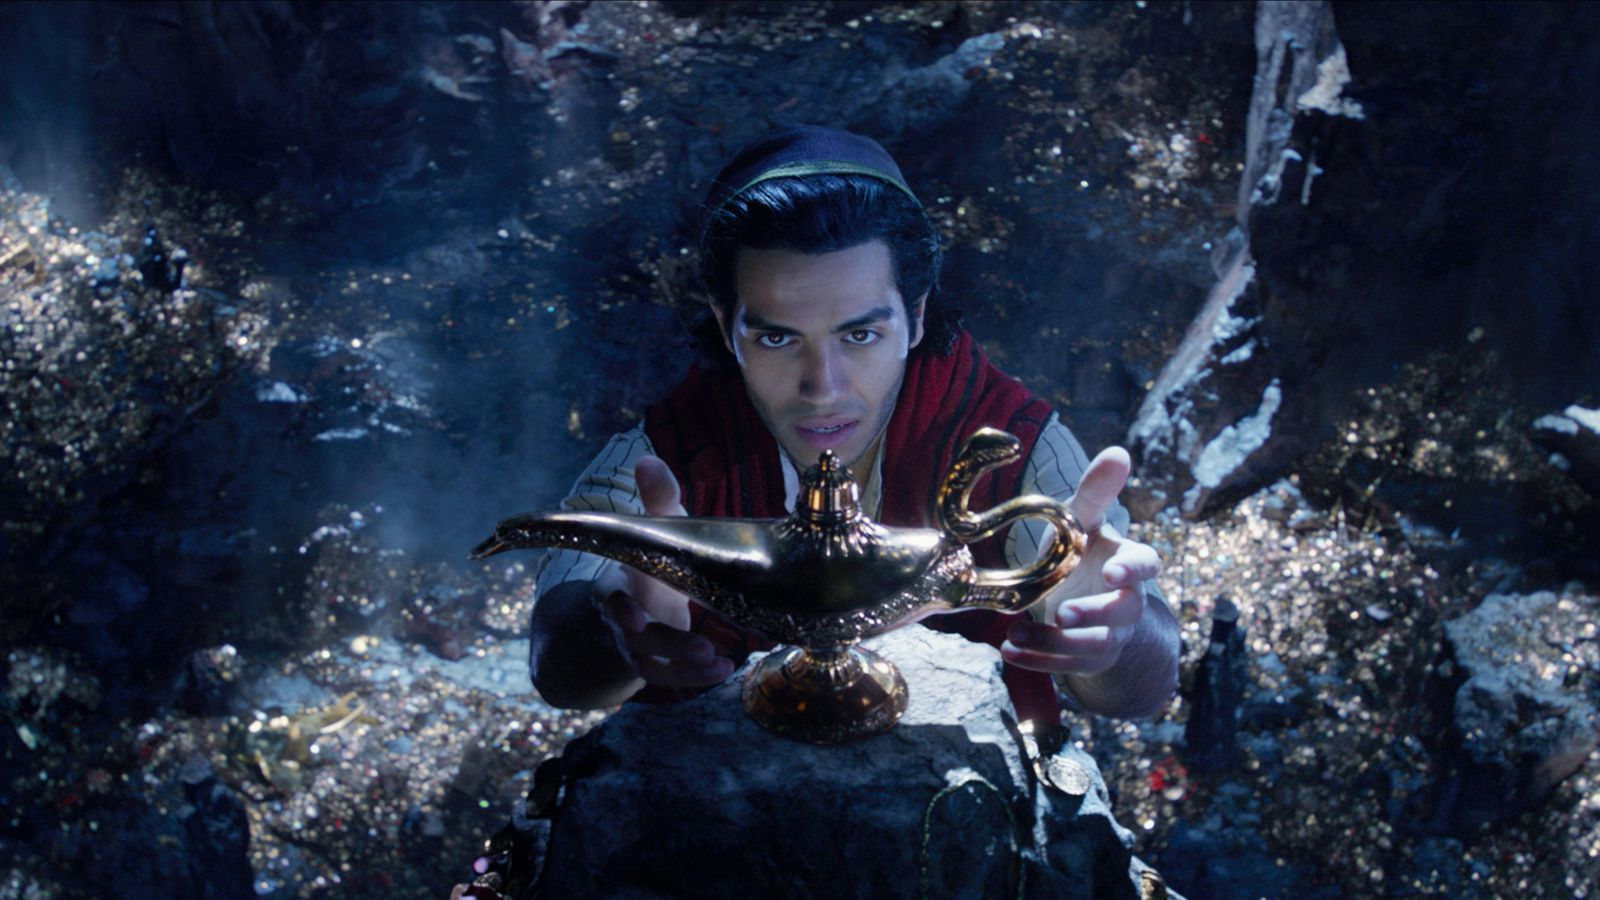 Our review of ALADDIN